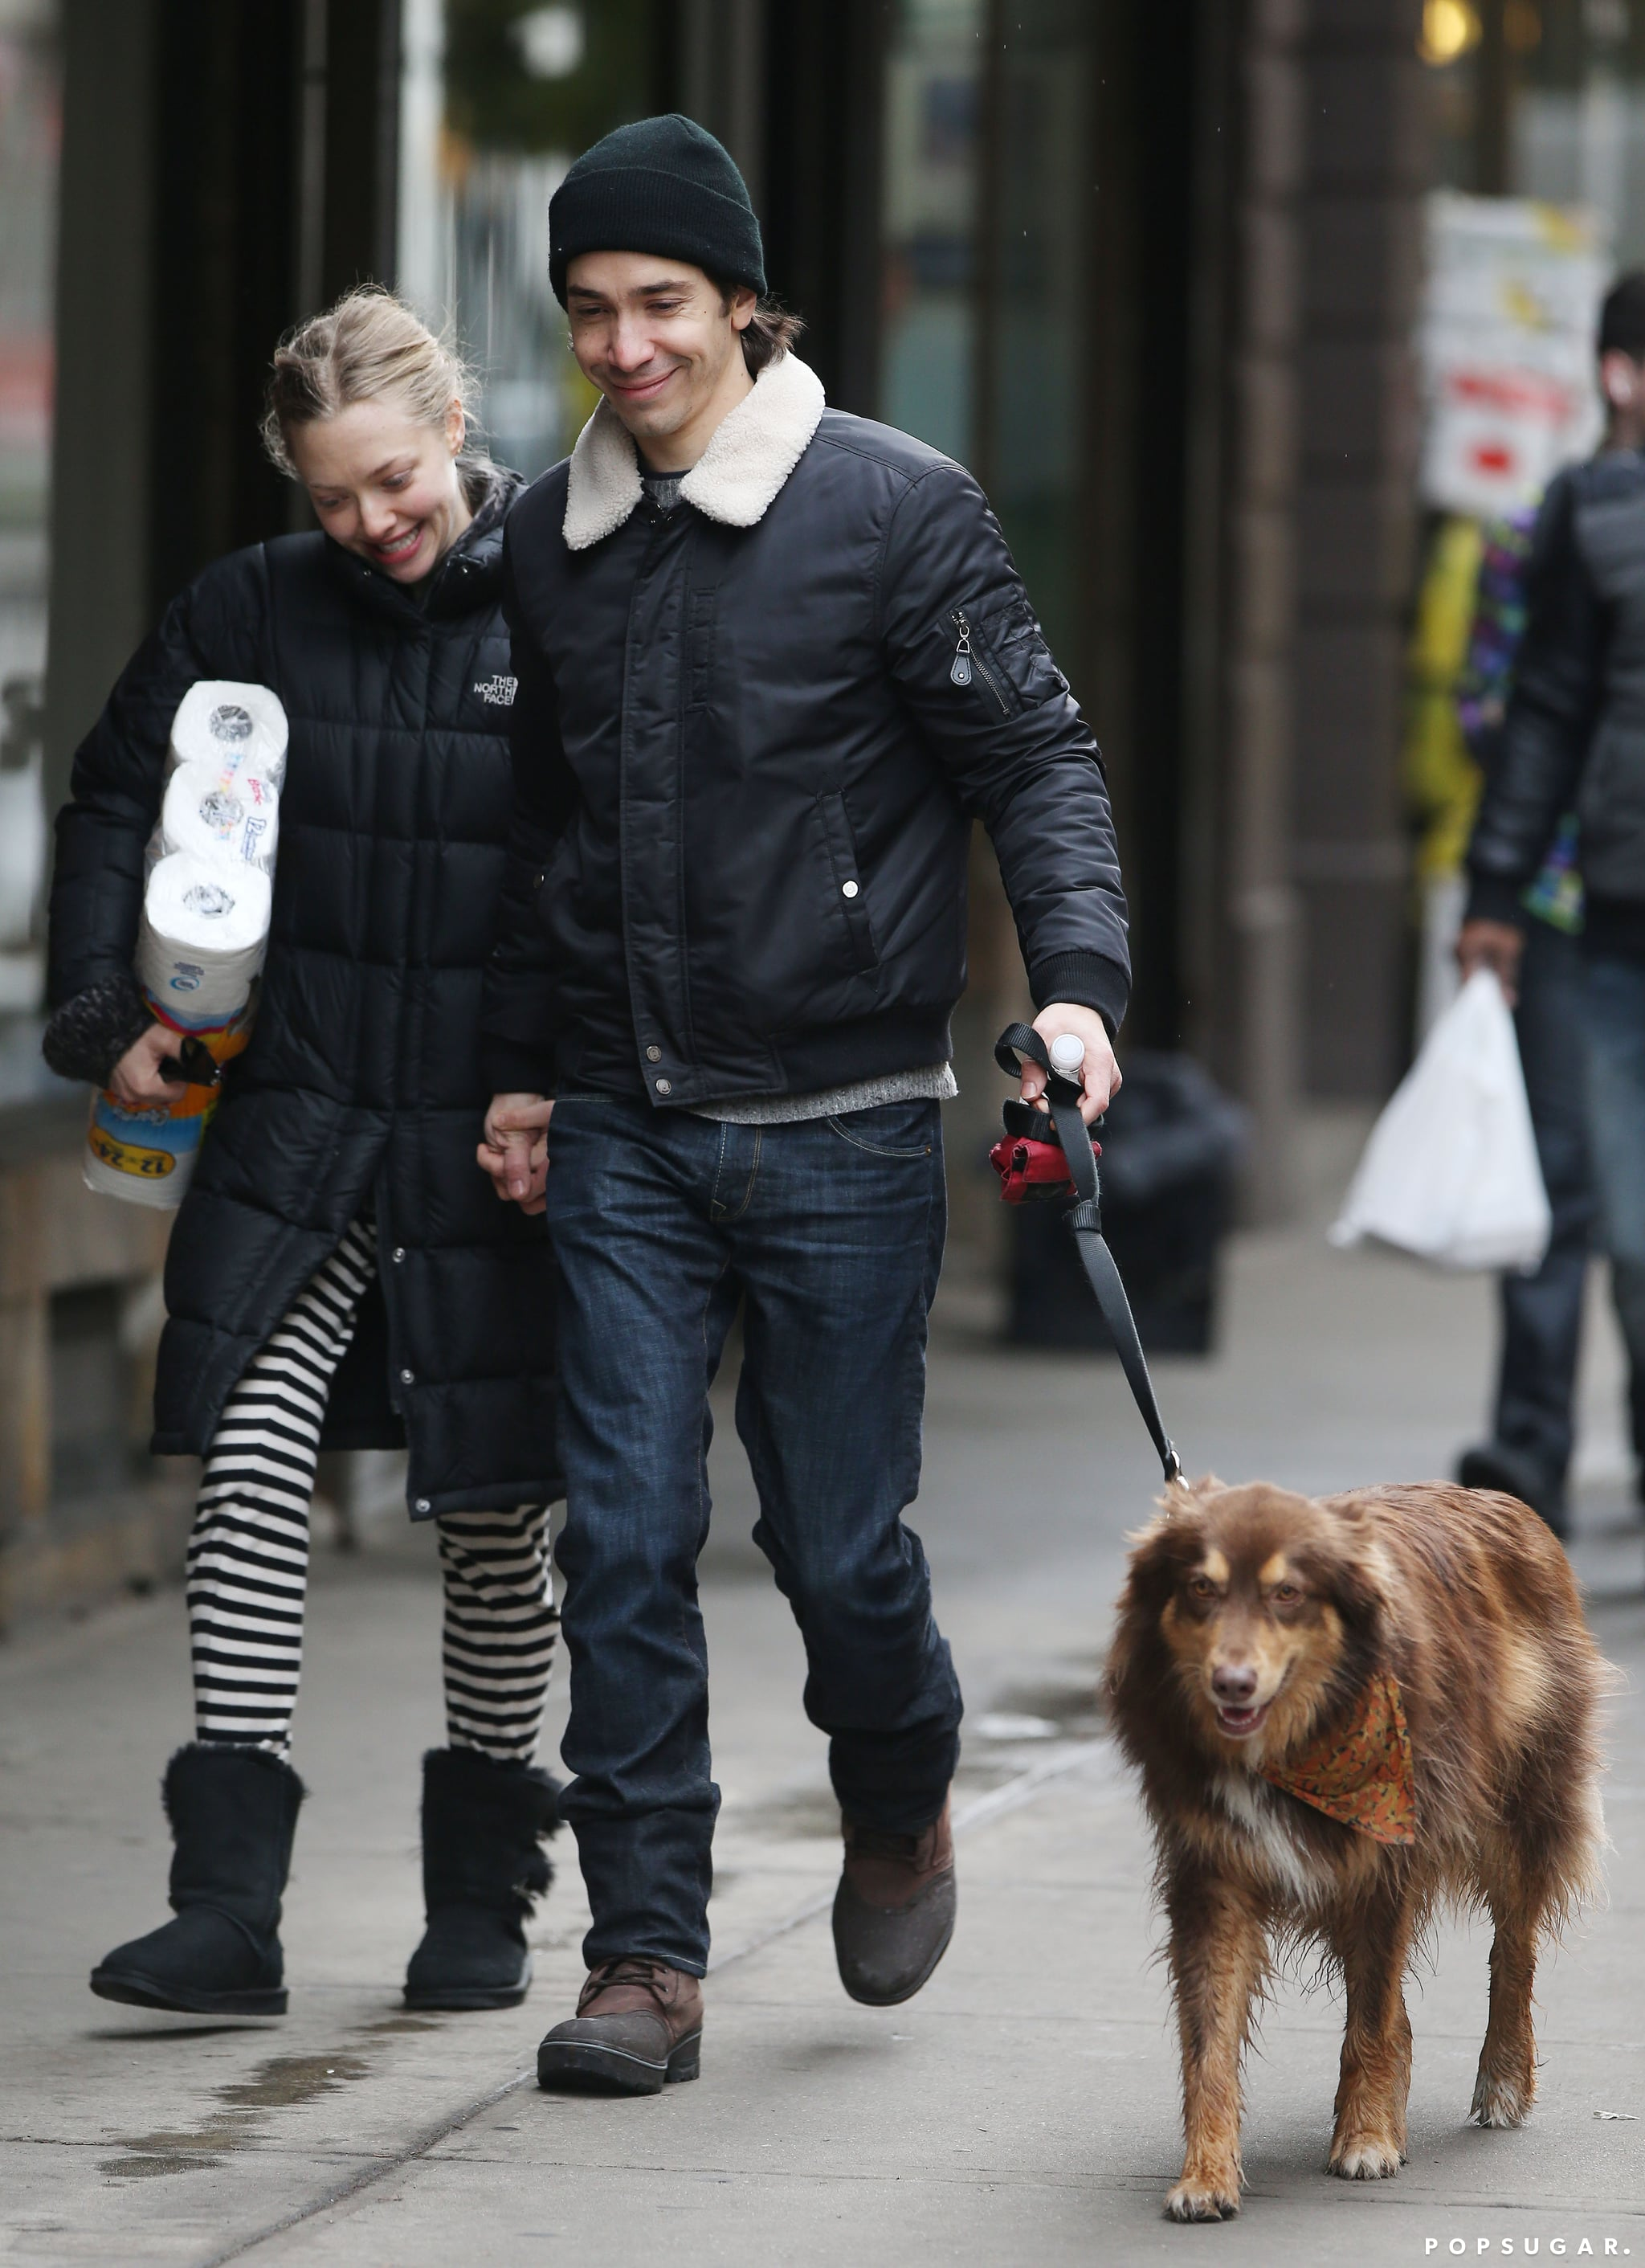 They hold hands while walking her dog.